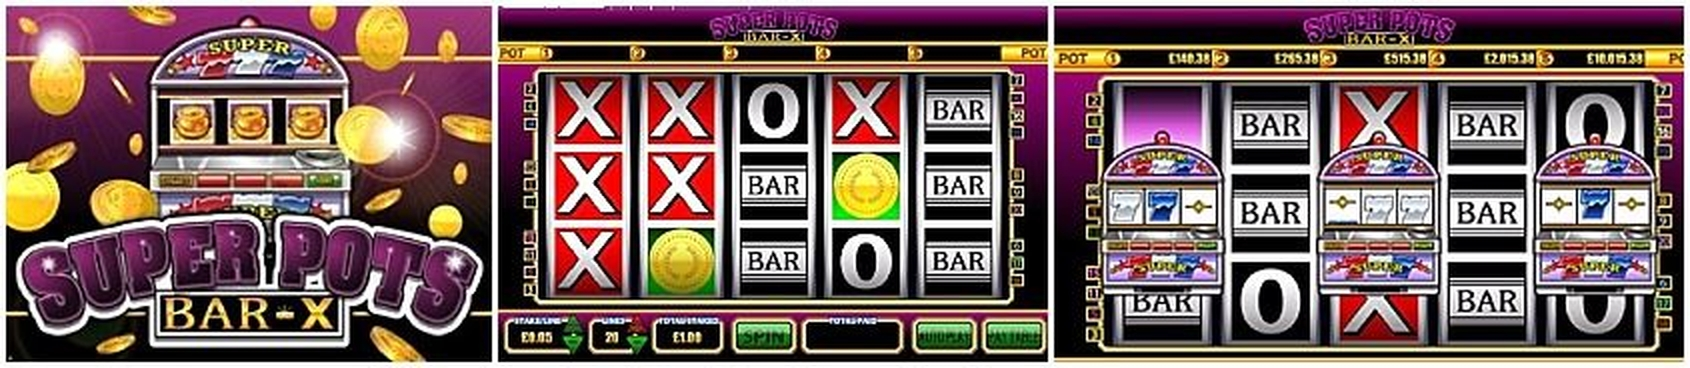 The Super Pots Bar-X Online Slot Demo Game by Betdigital